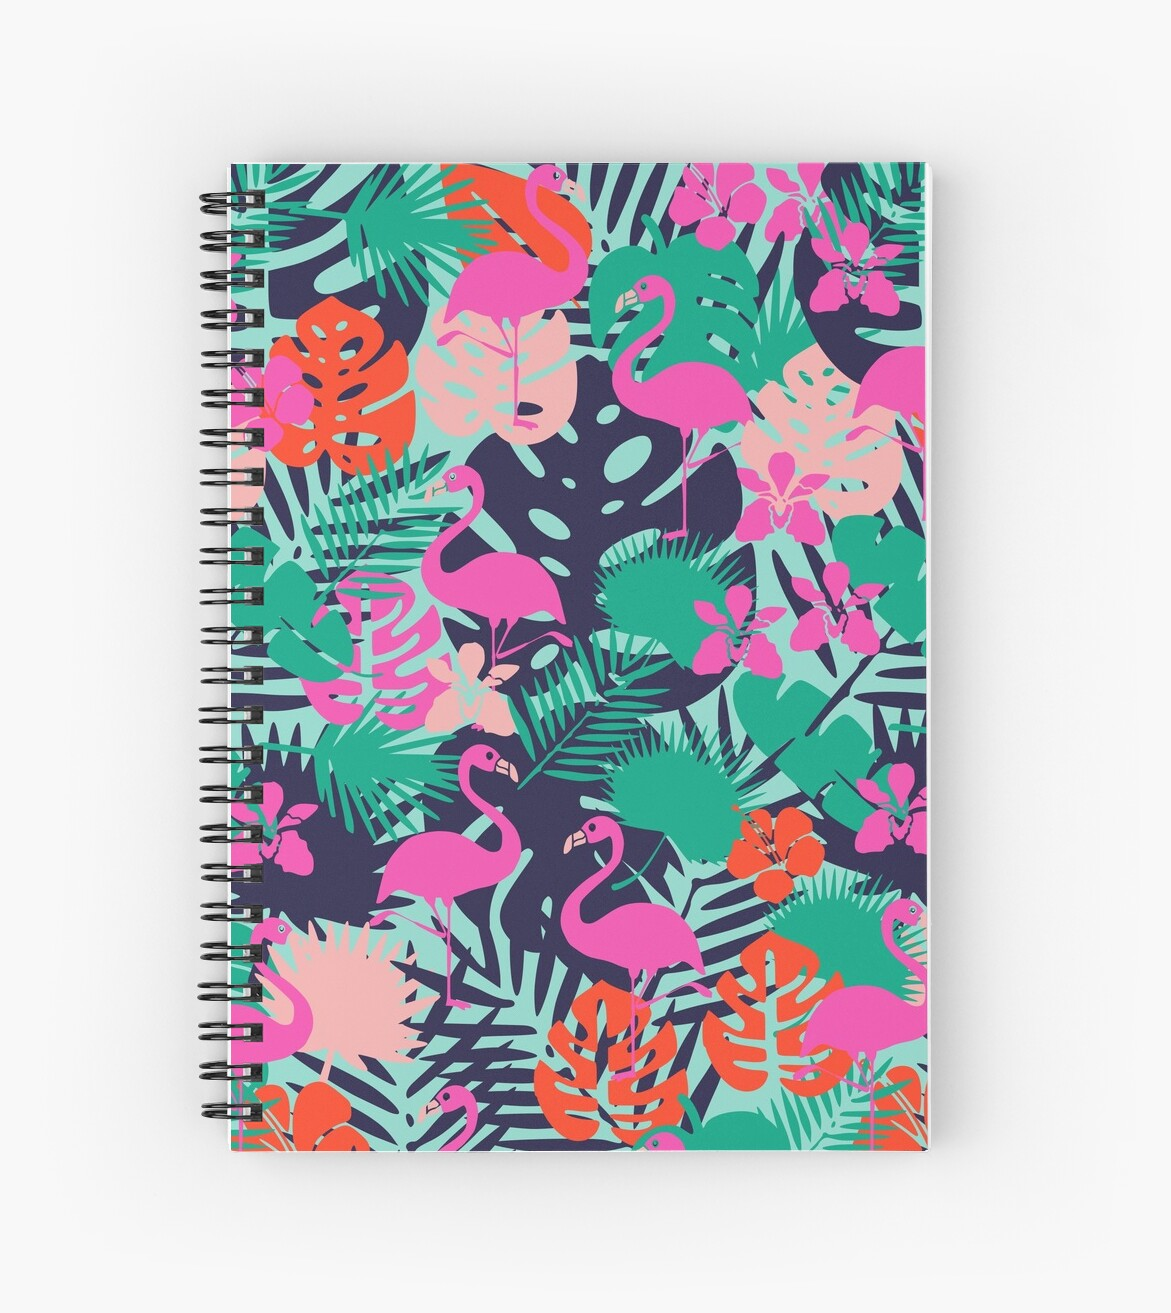 Pink Flamingo with Tropical Leaves by kapotka